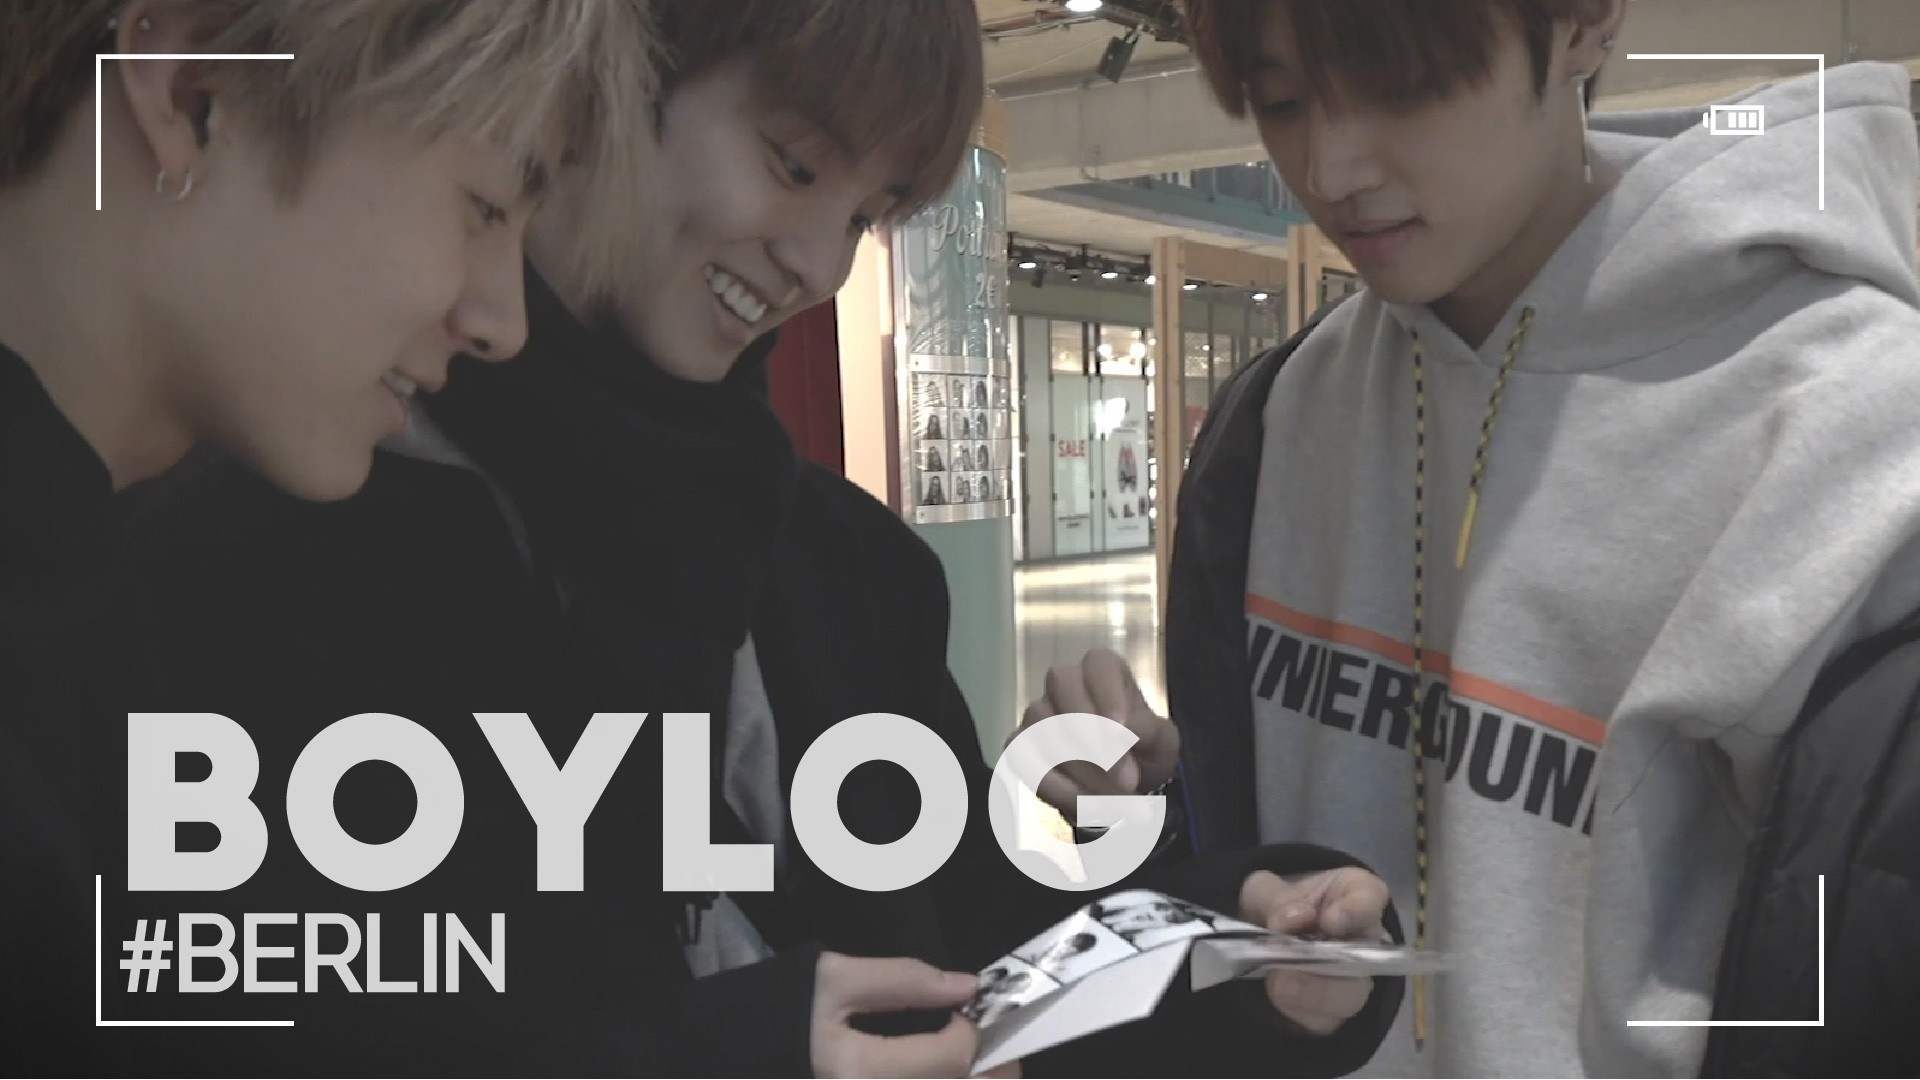 [BOYLOG] BOYLOG IN BERLIN